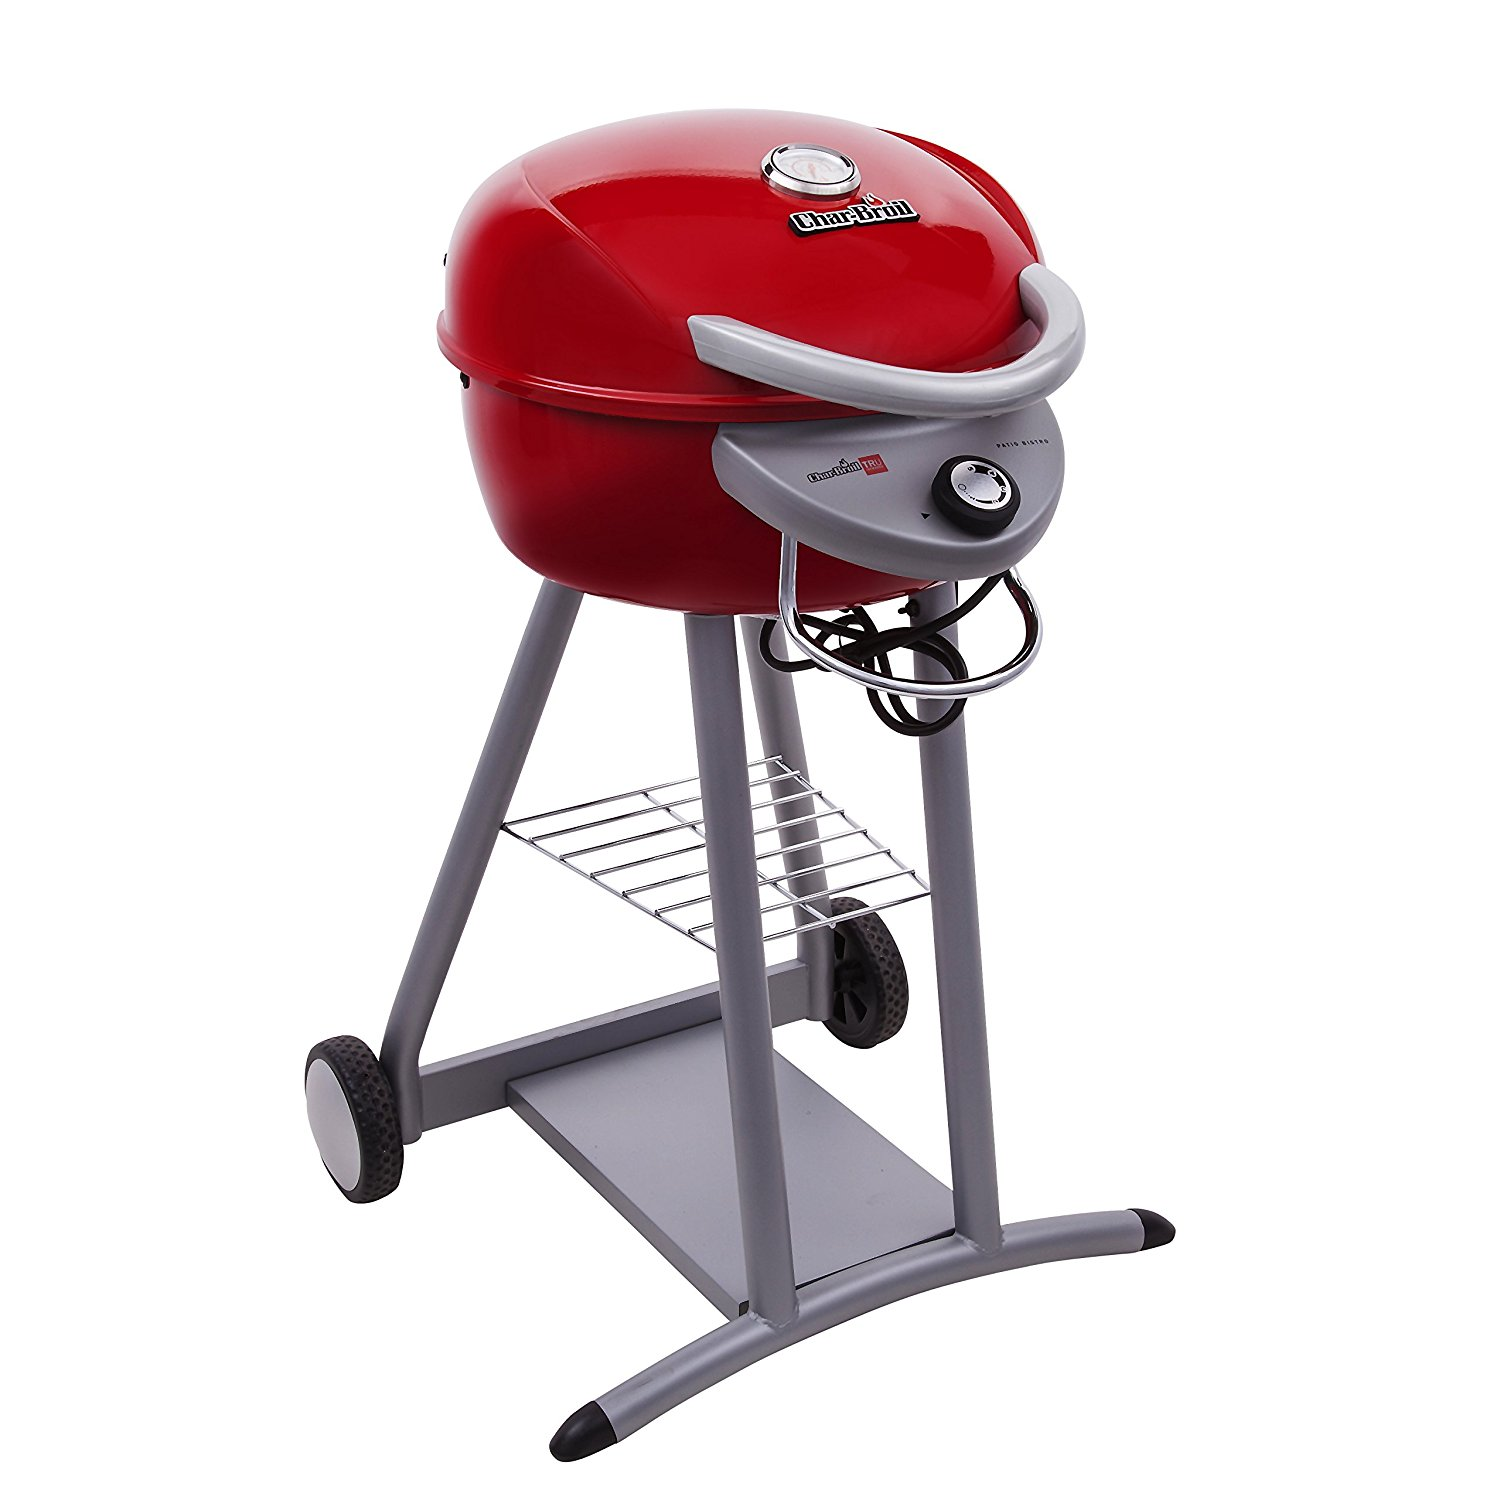 Superior Image, Char Broil TRU Infrared Patio Bistro Electric Grill